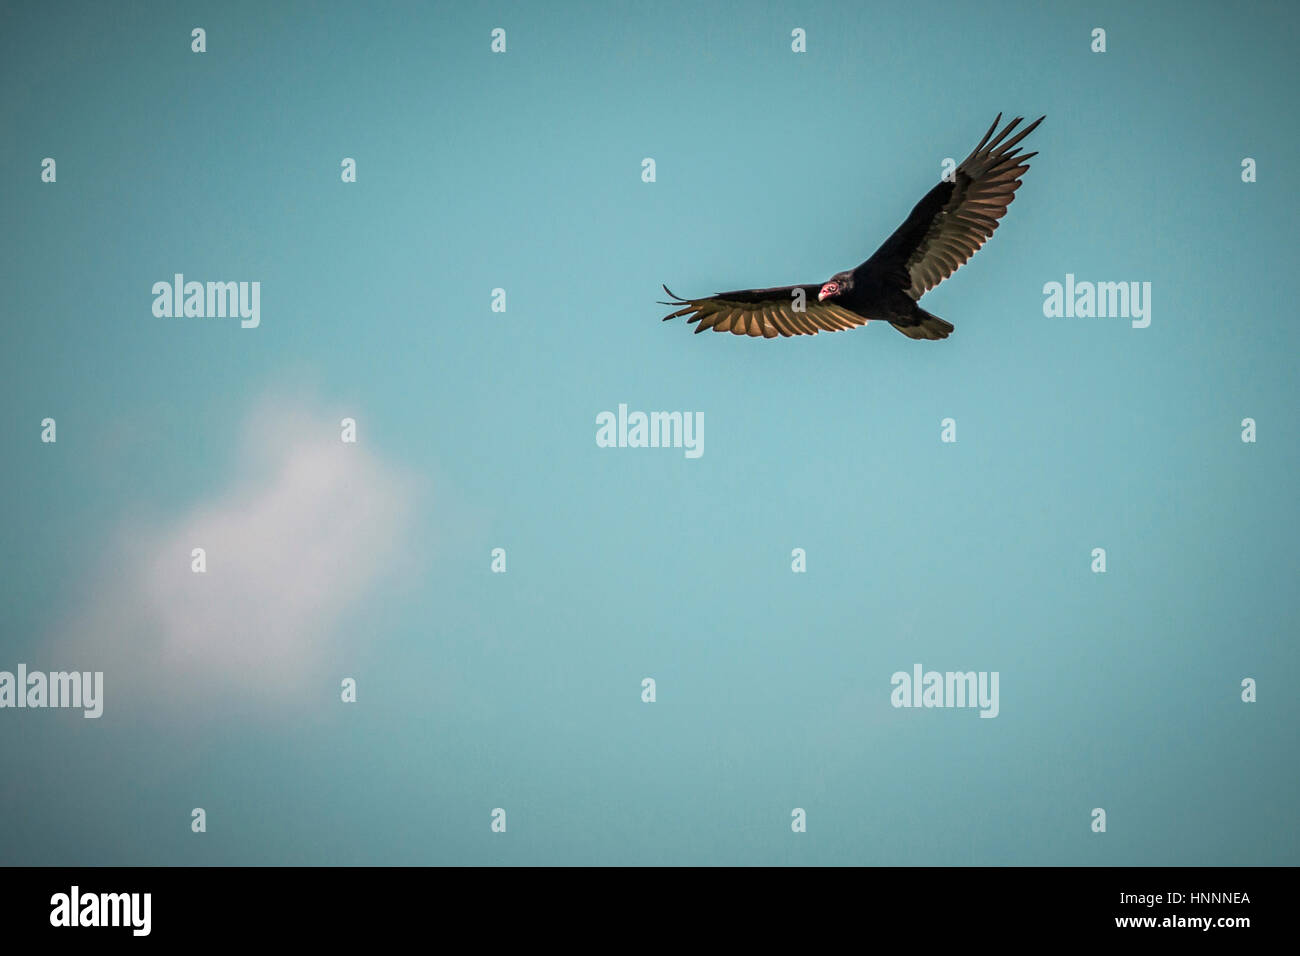 Low angle view of bird flying in blue sky - Stock Image